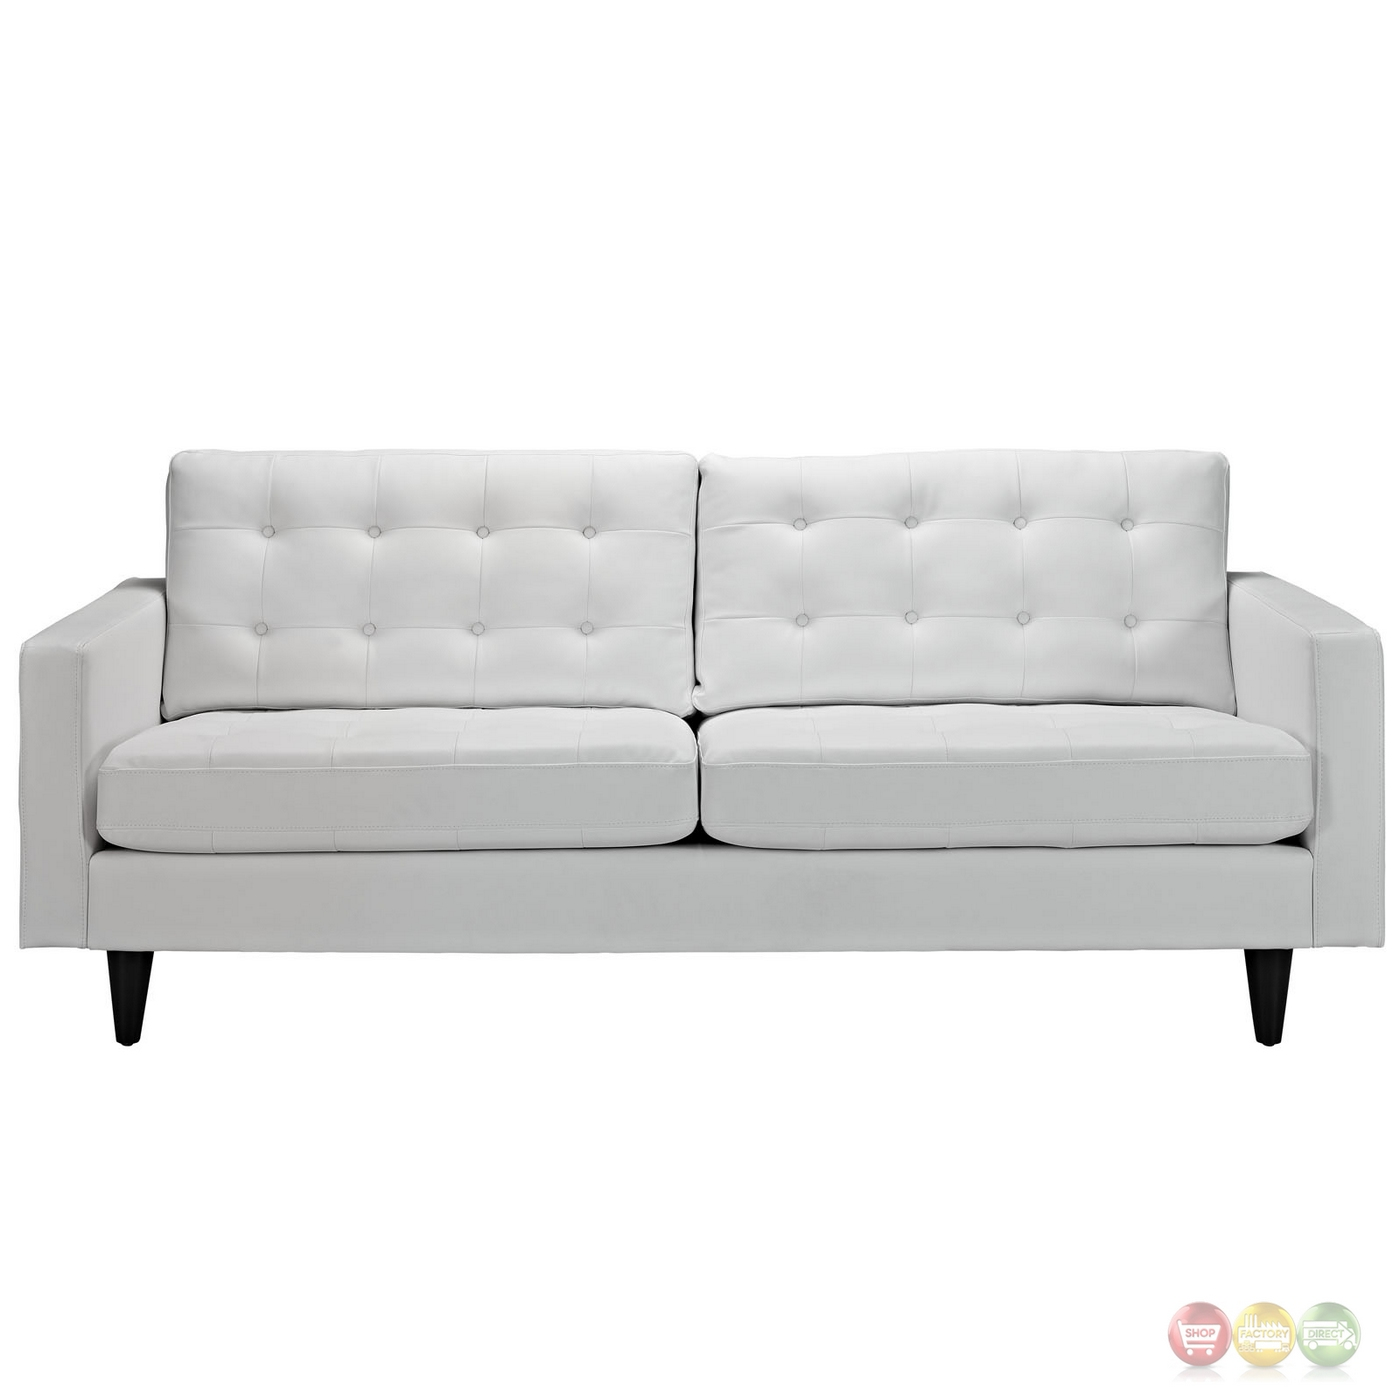 Empress Contemporary Button Tufted Leather Sofa White